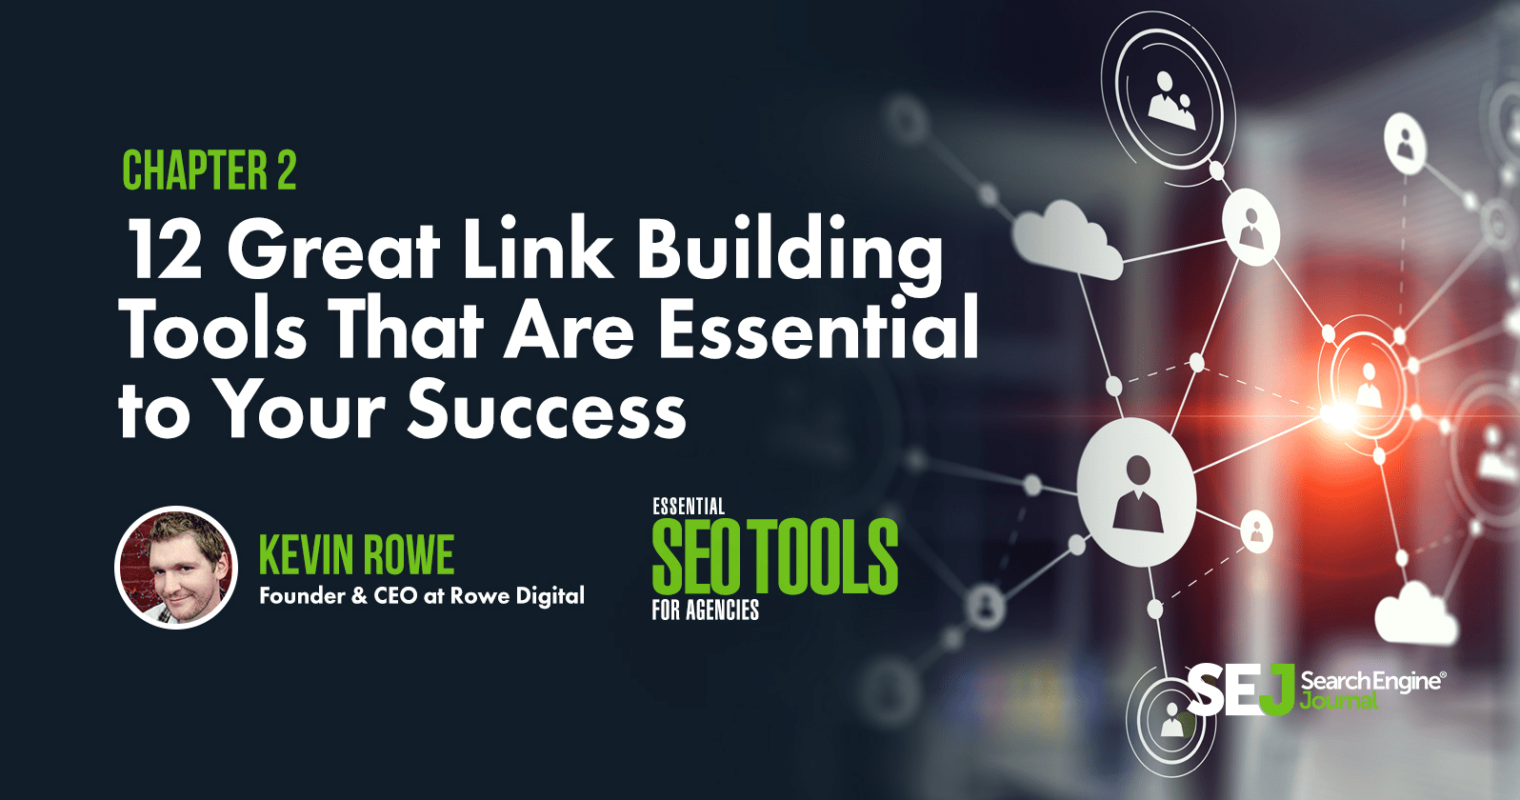 12 Great Link Building Tools That Are Essential to Your Success